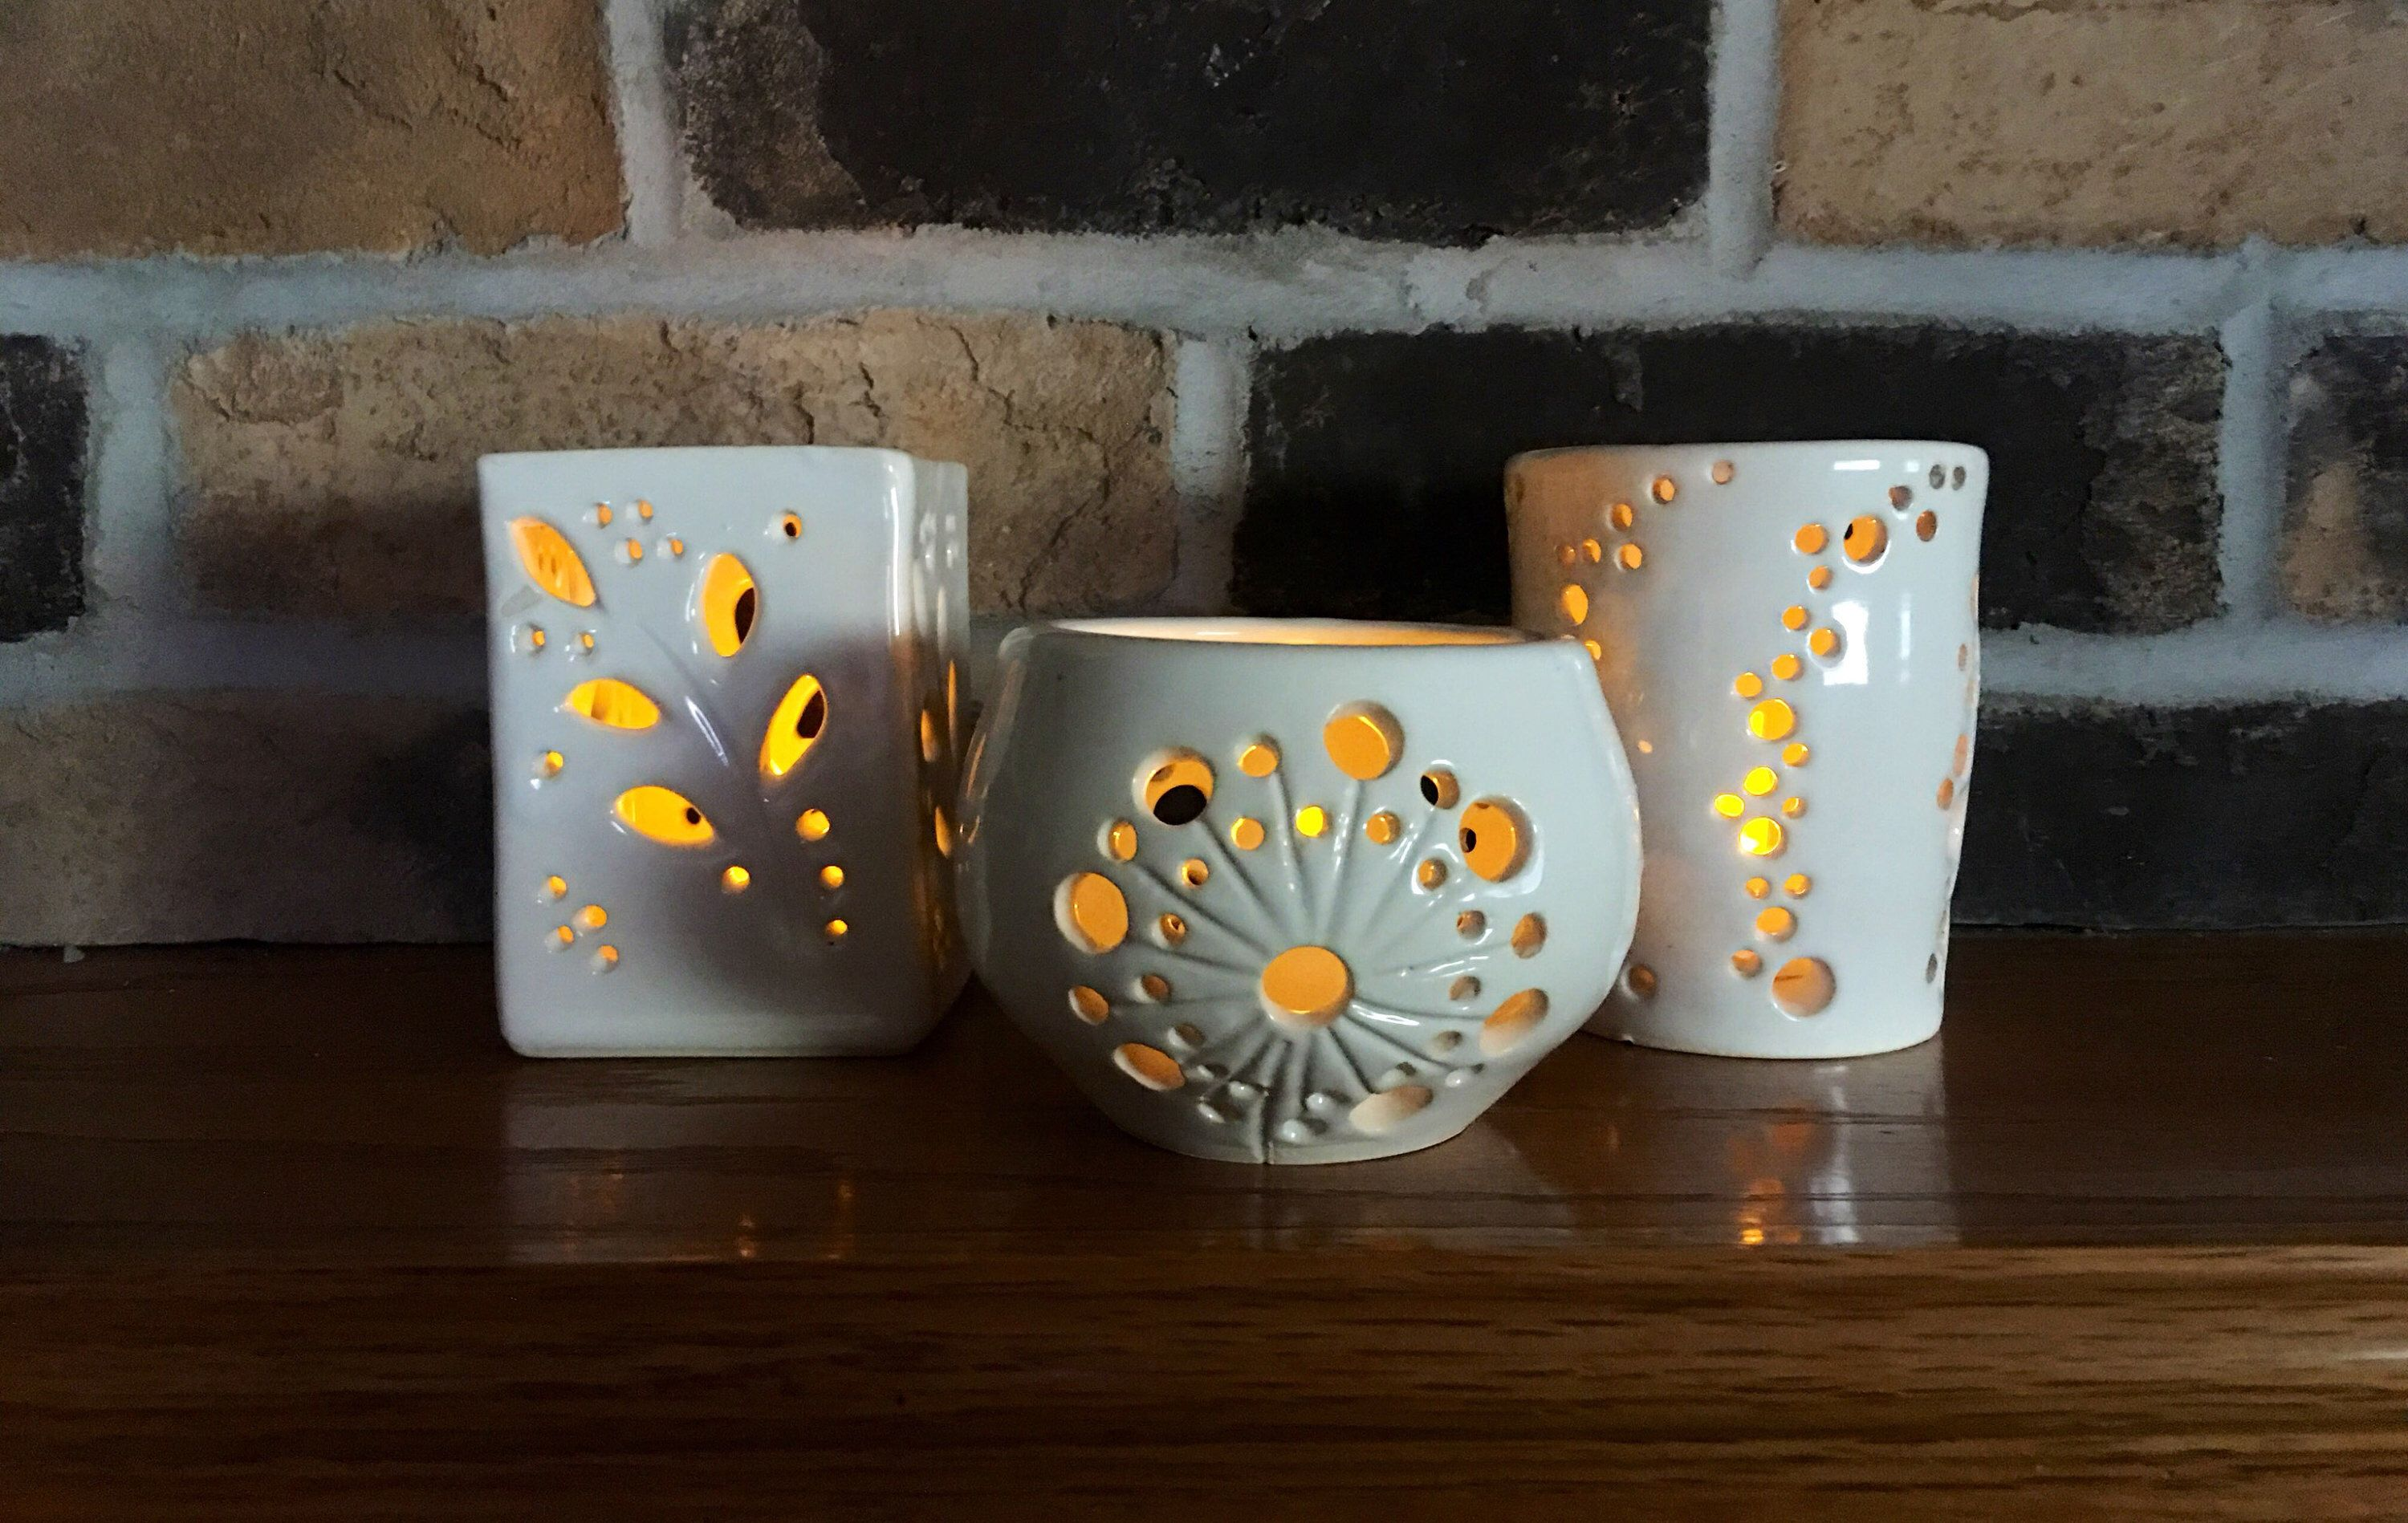 Excited To Share This Item From My Etsy Shop Pottery Votive Candleholder Luminary Votive Home Dec Pottery Candle Pottery Candle Holder Ceramic Candle Holders